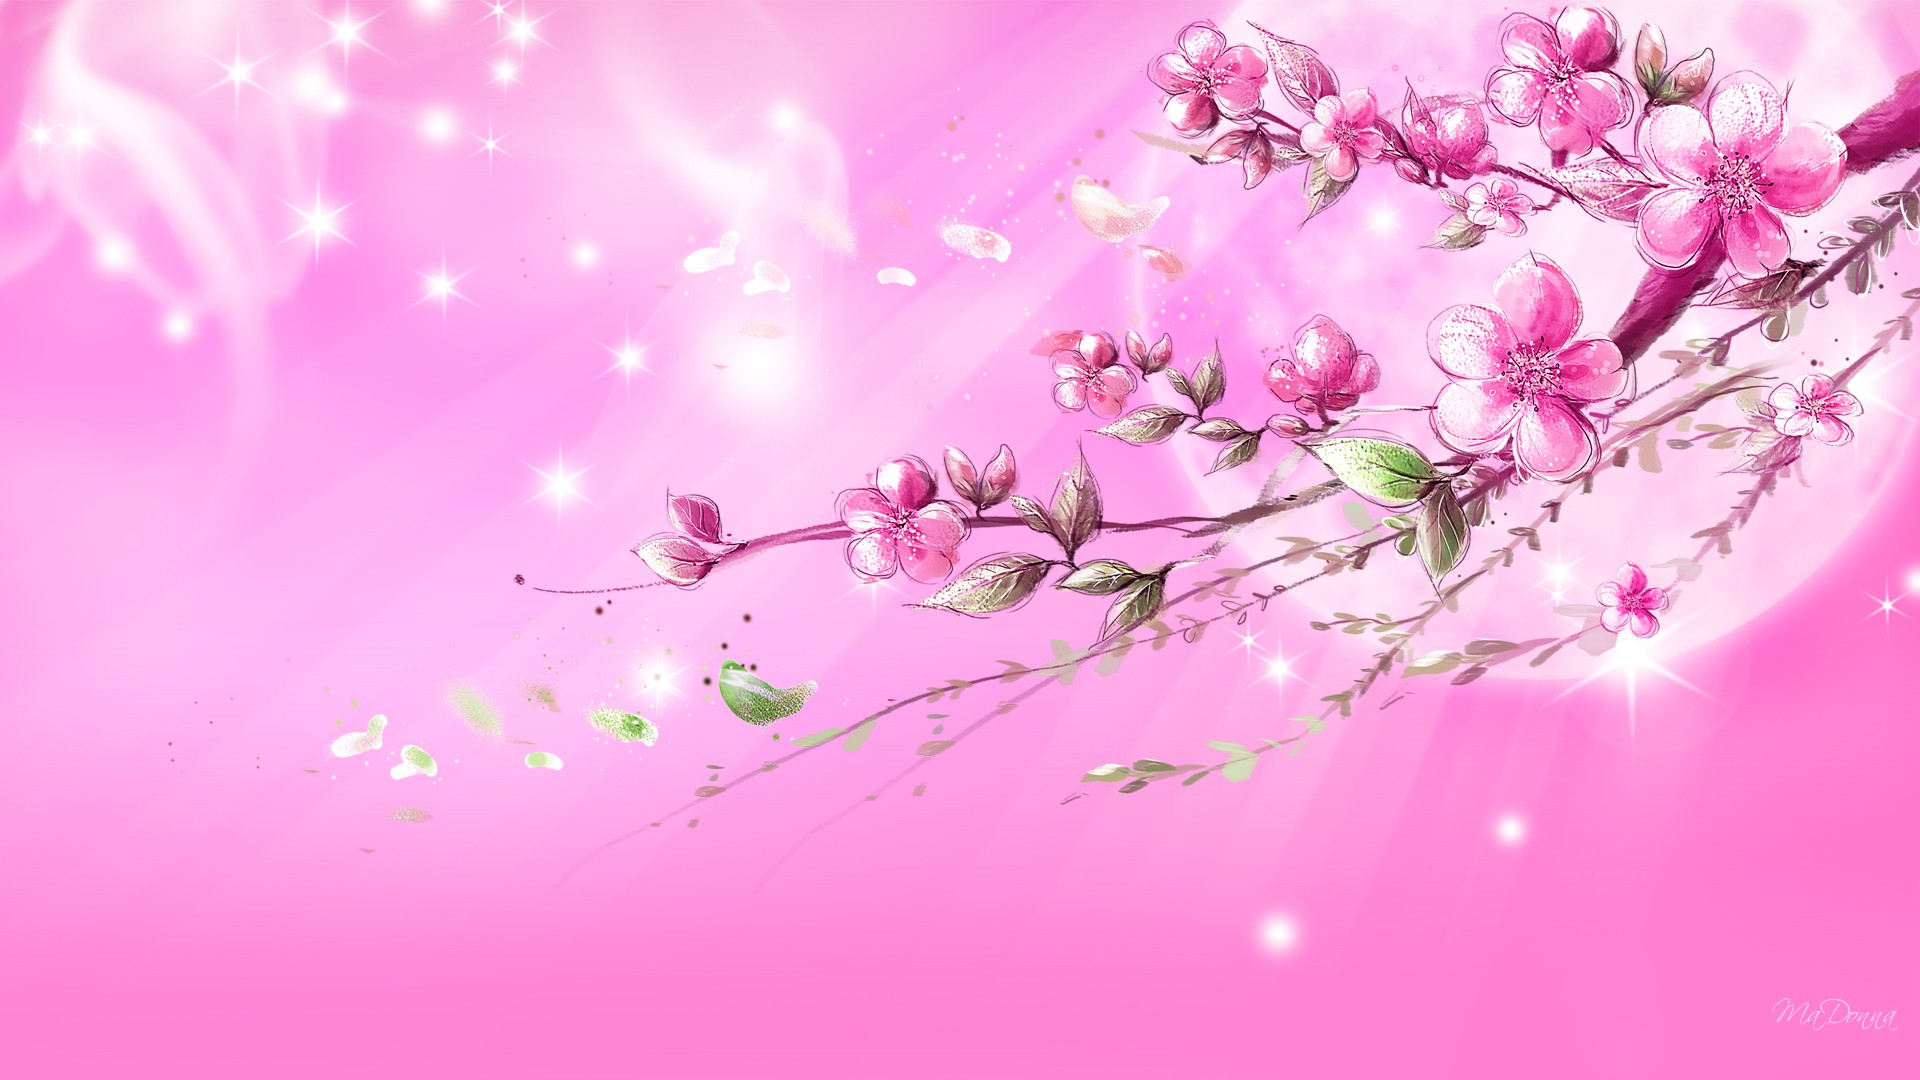 35 High Definition Pink WallpapersBackgrounds For 1920x1080